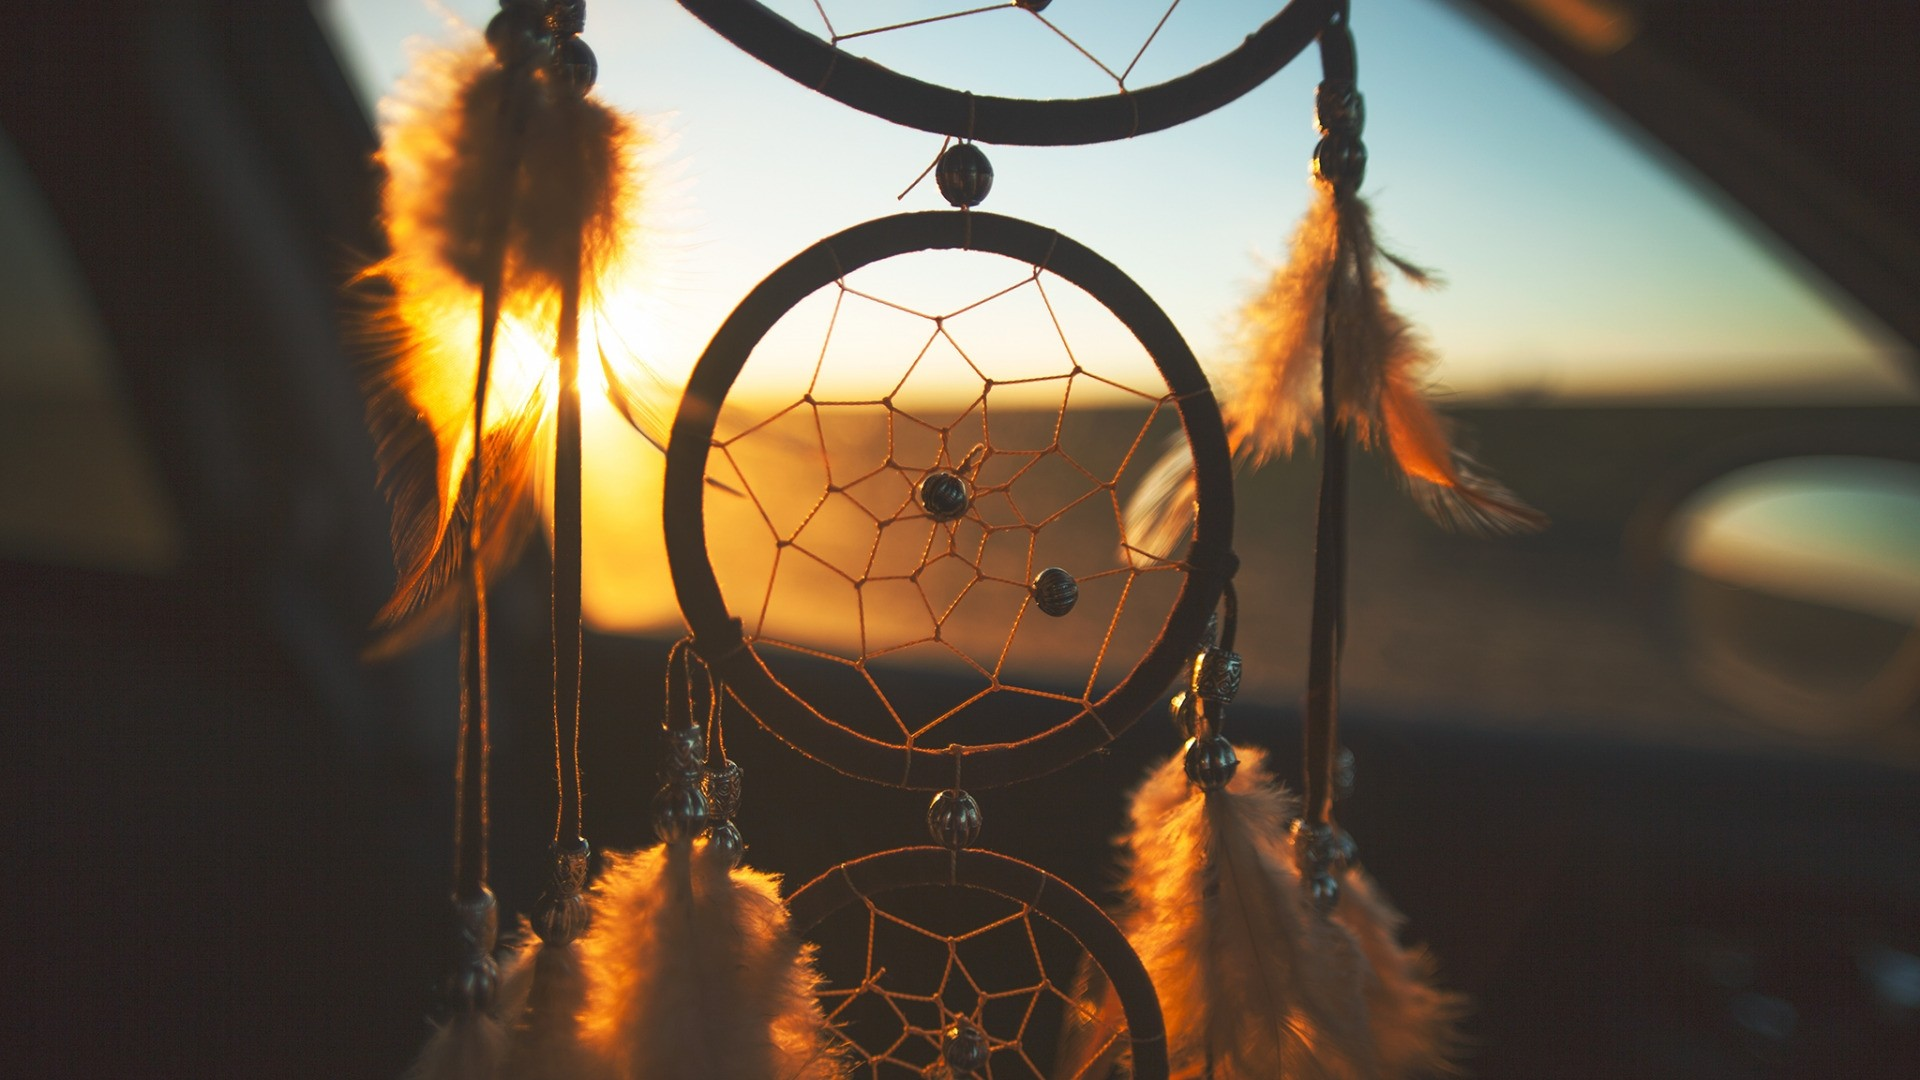 Dreamcatcher Download Wallpaper